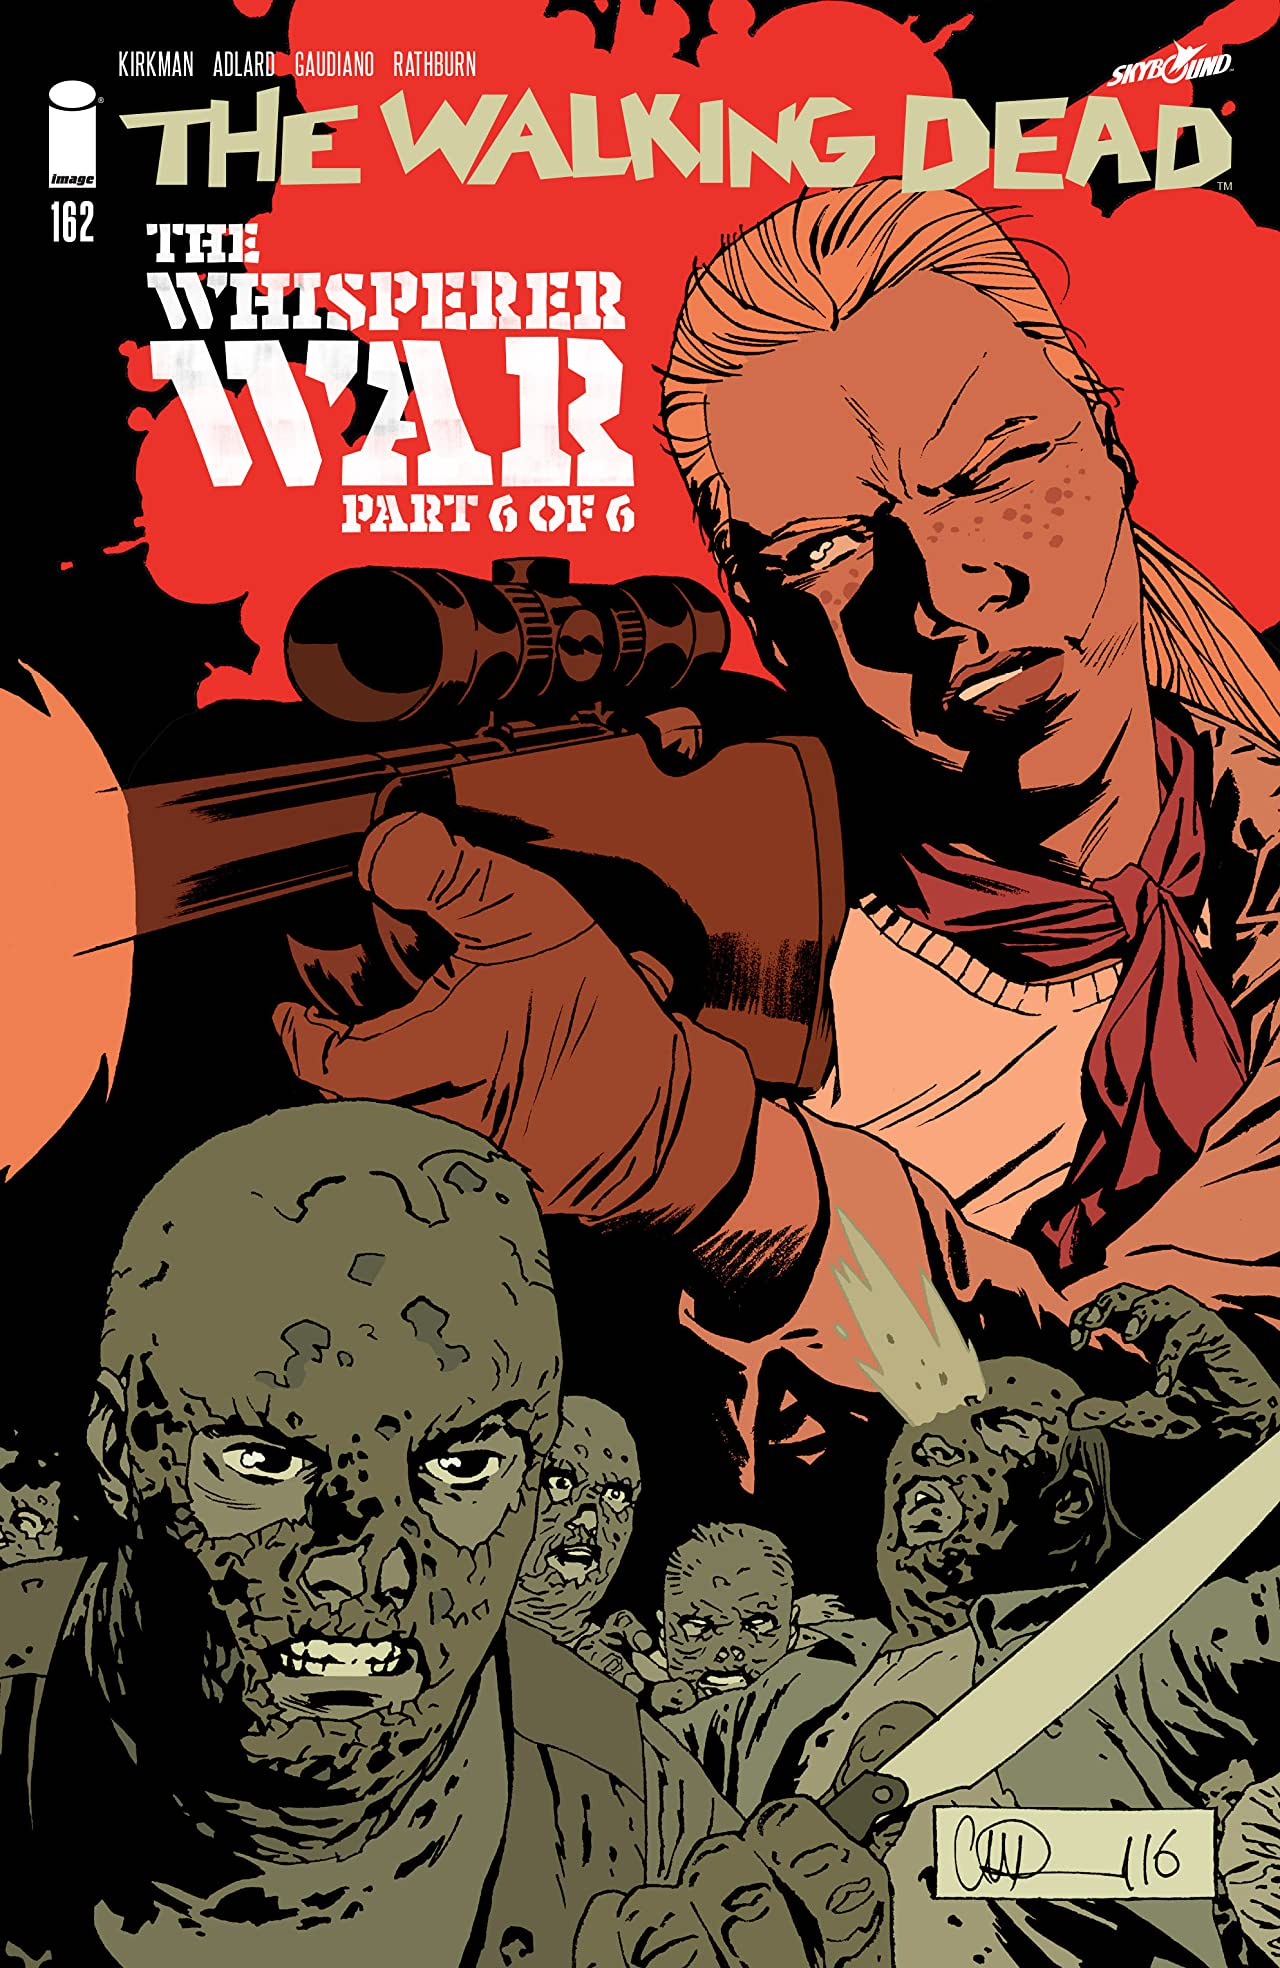 The Walking Dead No.162